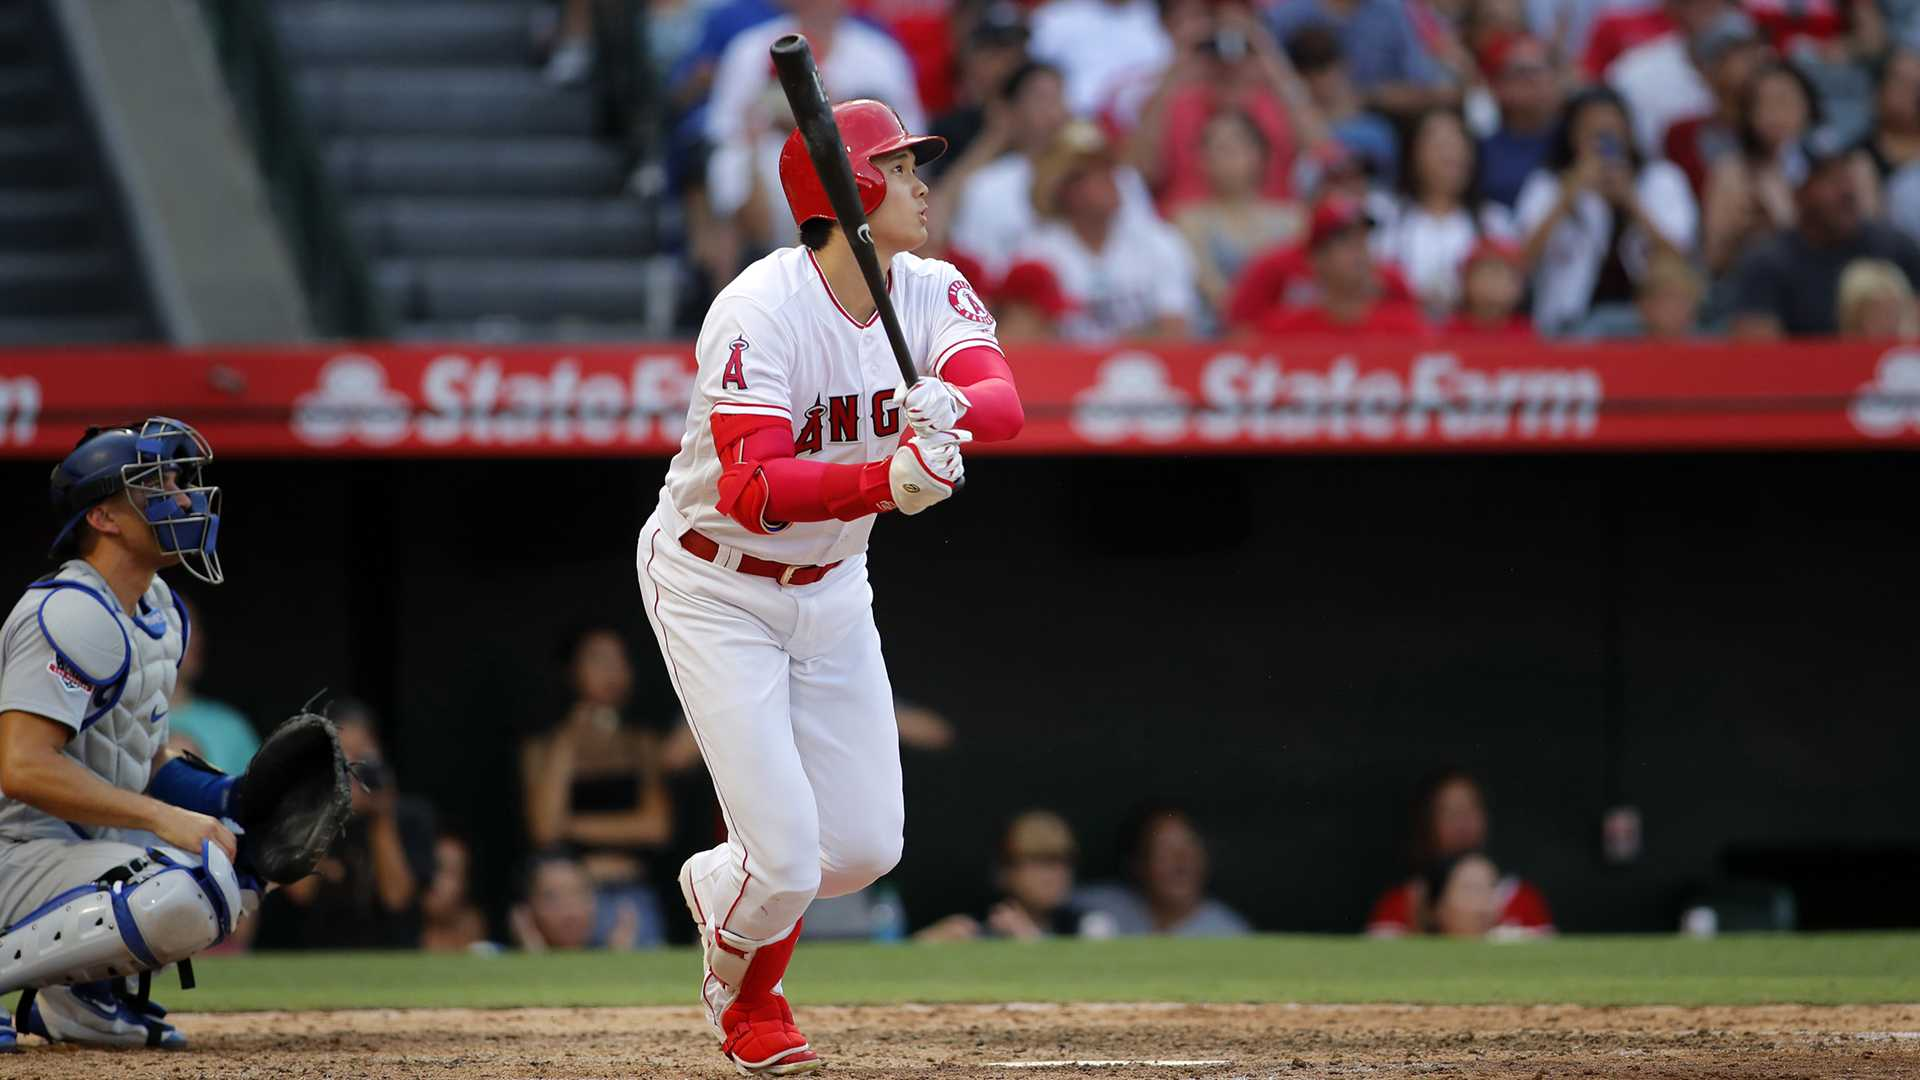 Angels slugger/pitcher Shohei Ohtani hits a home run to bring the Angels ahead of the Dodgers in the seventh inning at Angel Stadium Sunday, July 8, 2018 in Anaheim, Calif. The Dodgers won, 4-3. (Allen J. Schaben/Los Angeles Times/TNS)